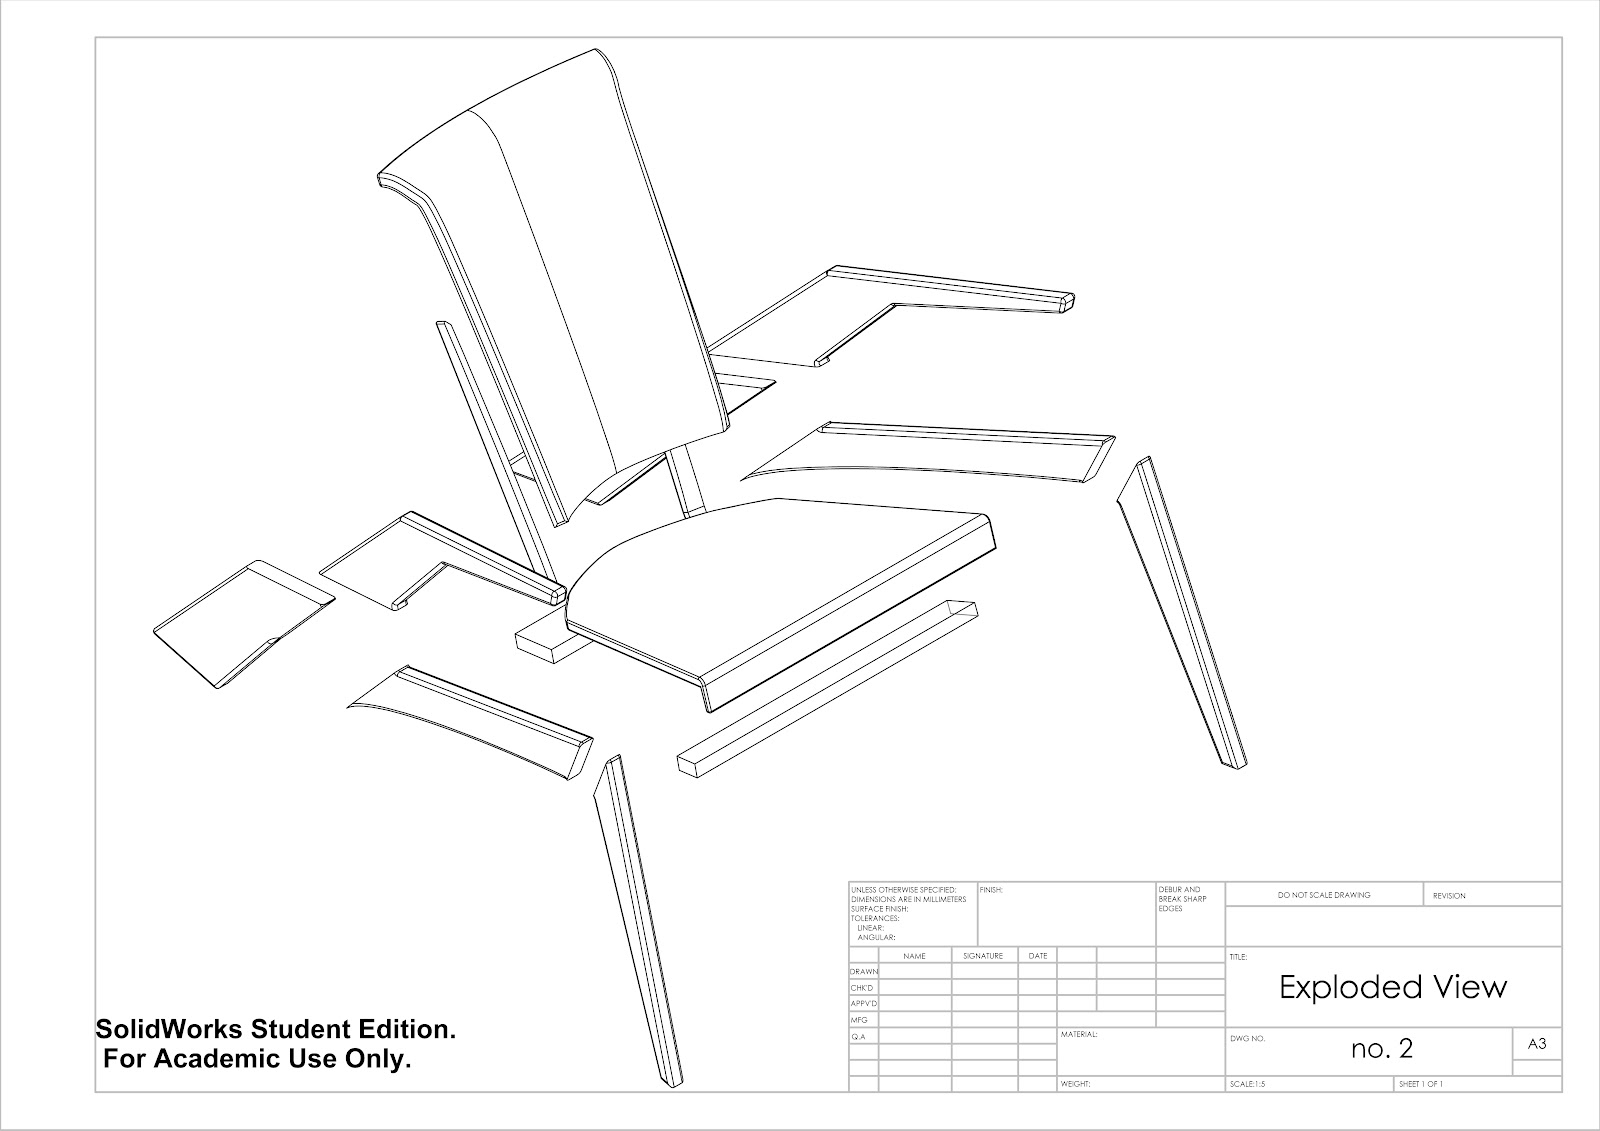 simple exploded view diagram human skull eye zac douglas furniture design cad technical drawings